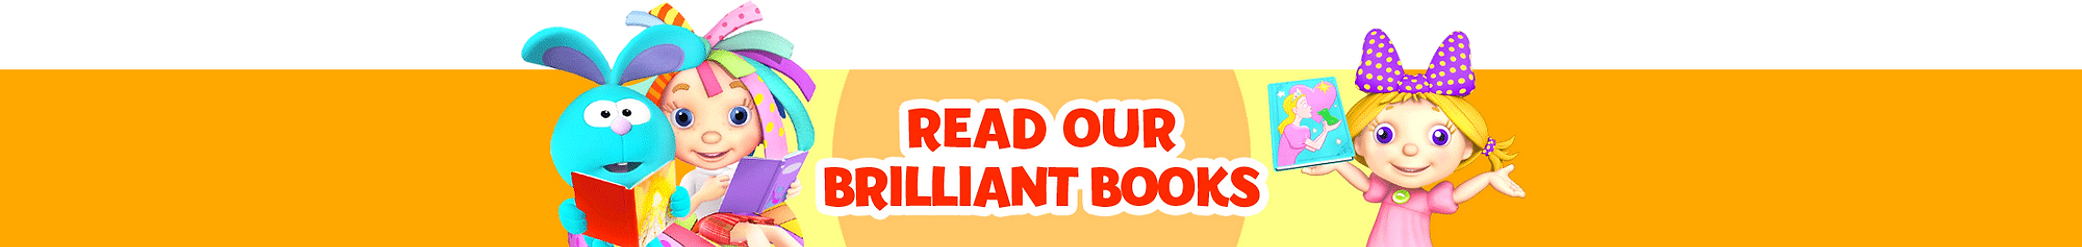 Read-Our-Brilliant-Books-Banner.png